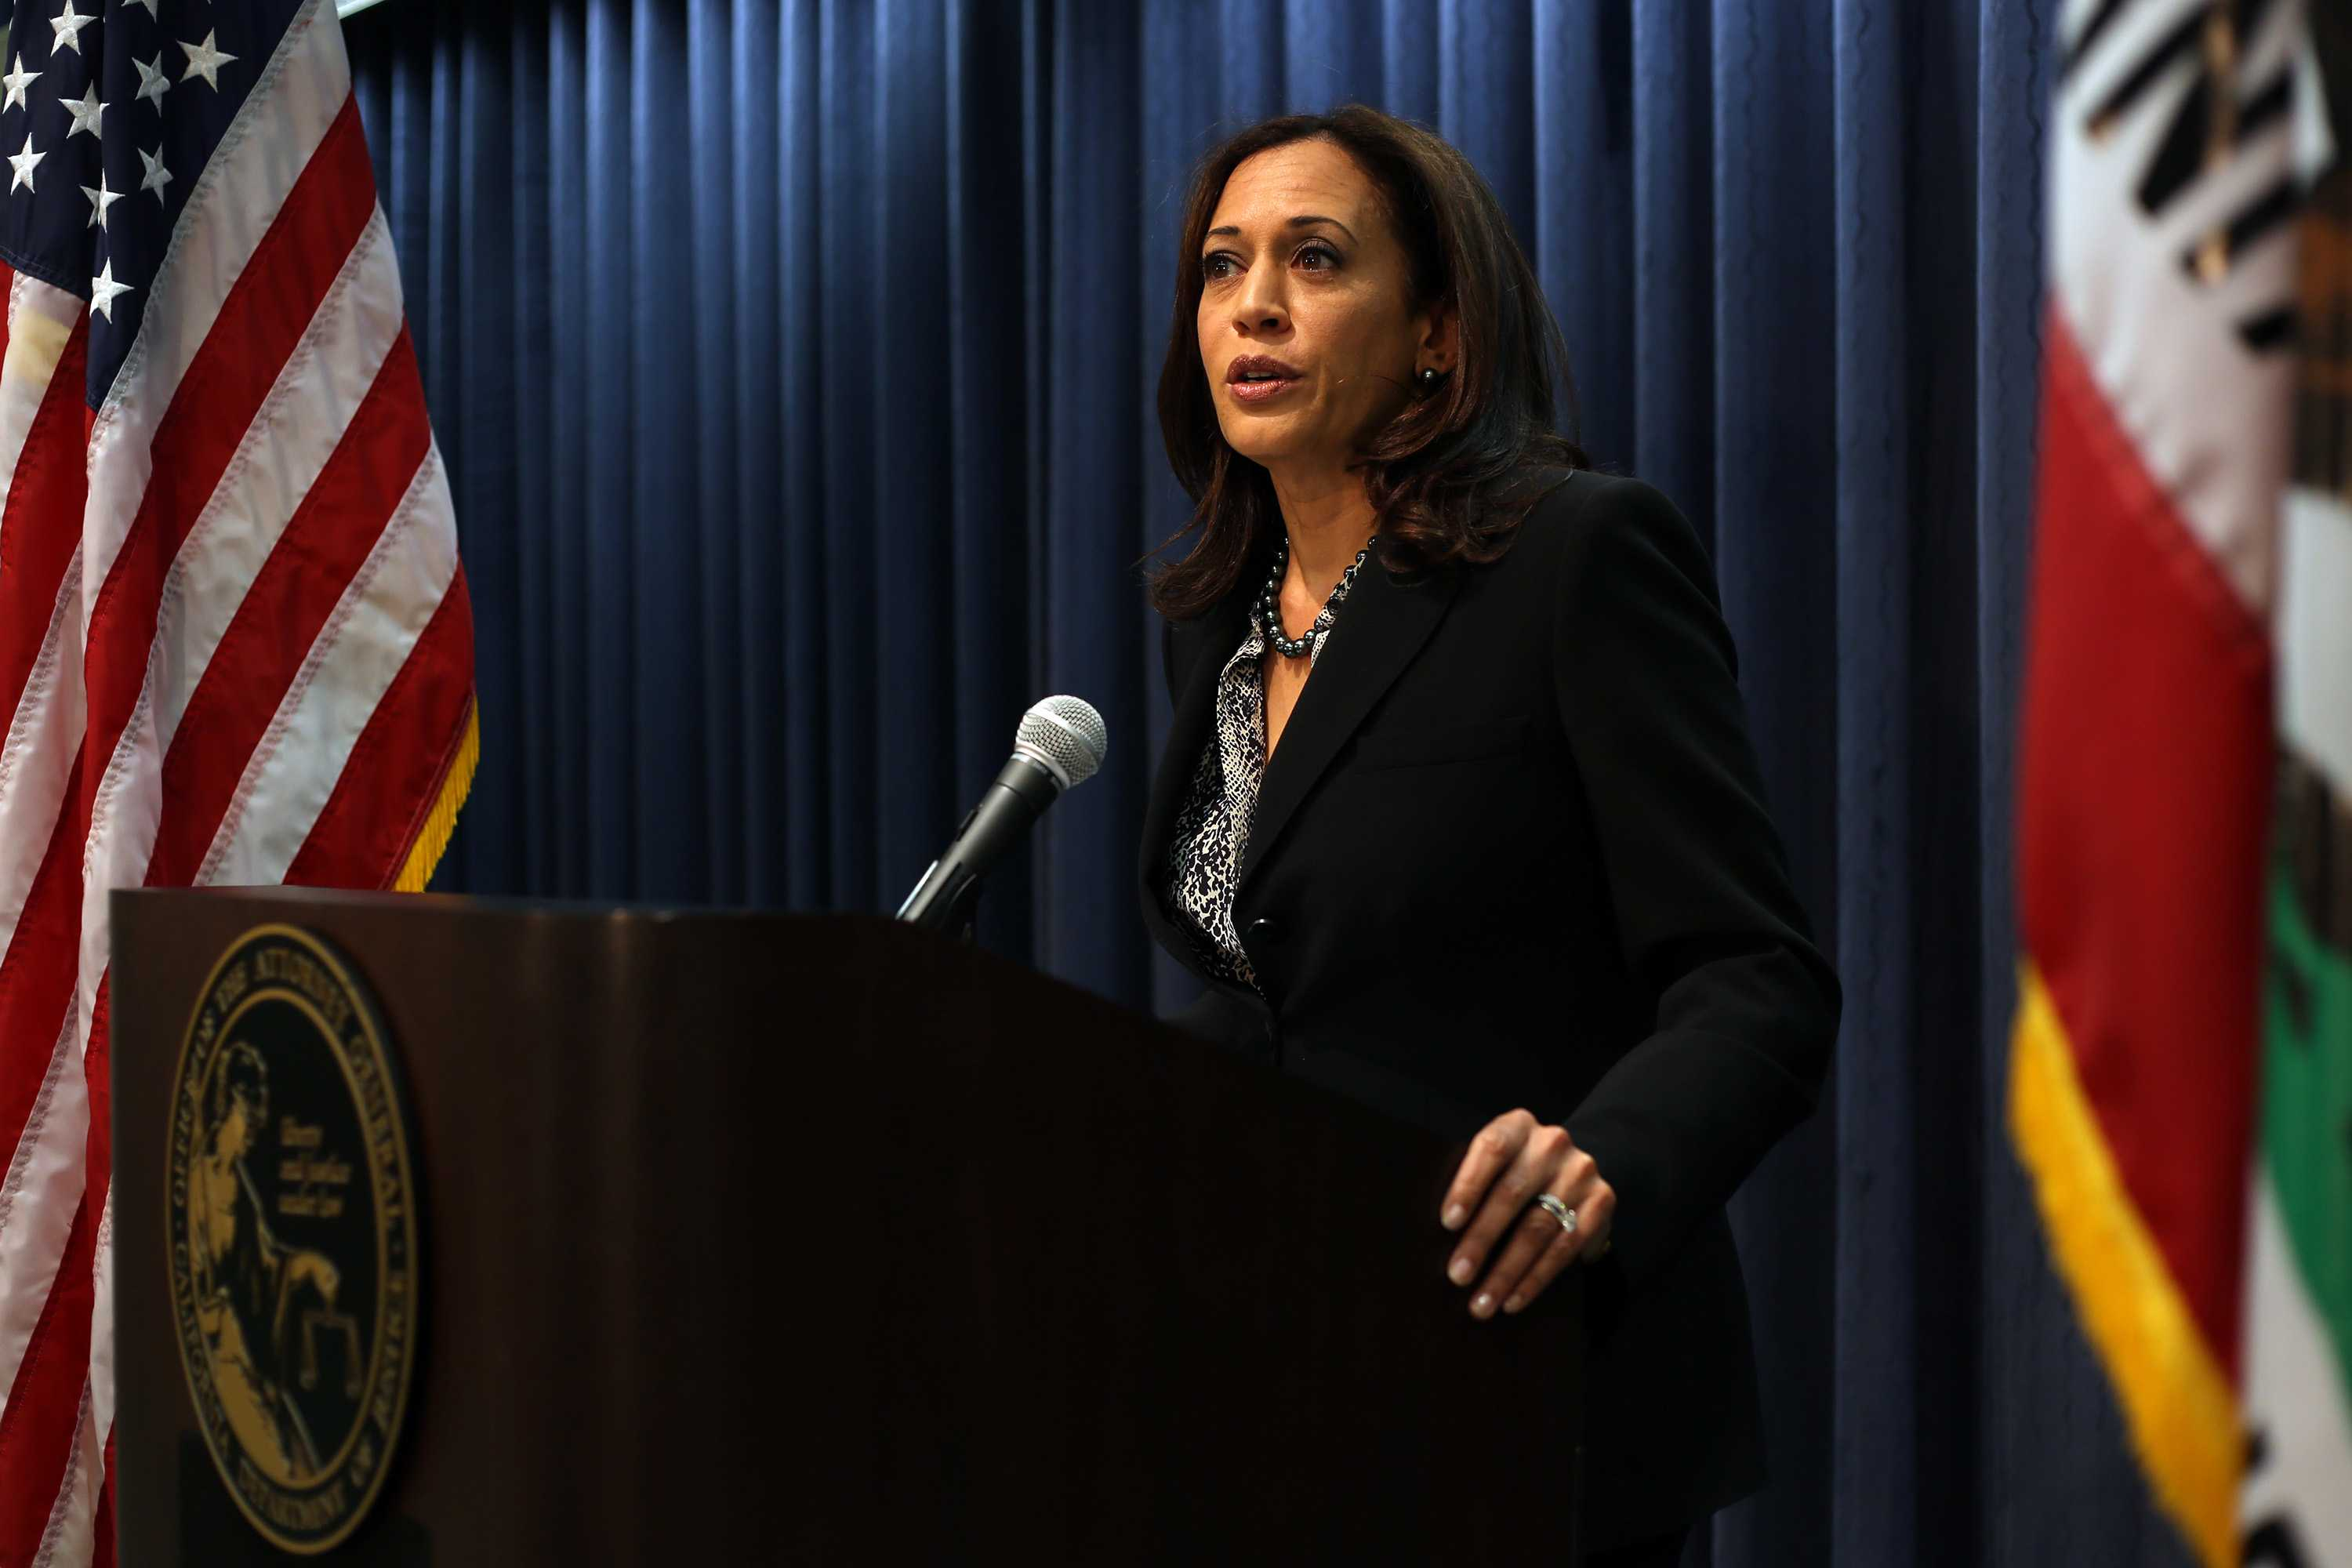 Attorney General Kamala D. Harris addresses a news conference on Tuesday, Feb. 3, 2015, on the verdict in the cyber exploitation